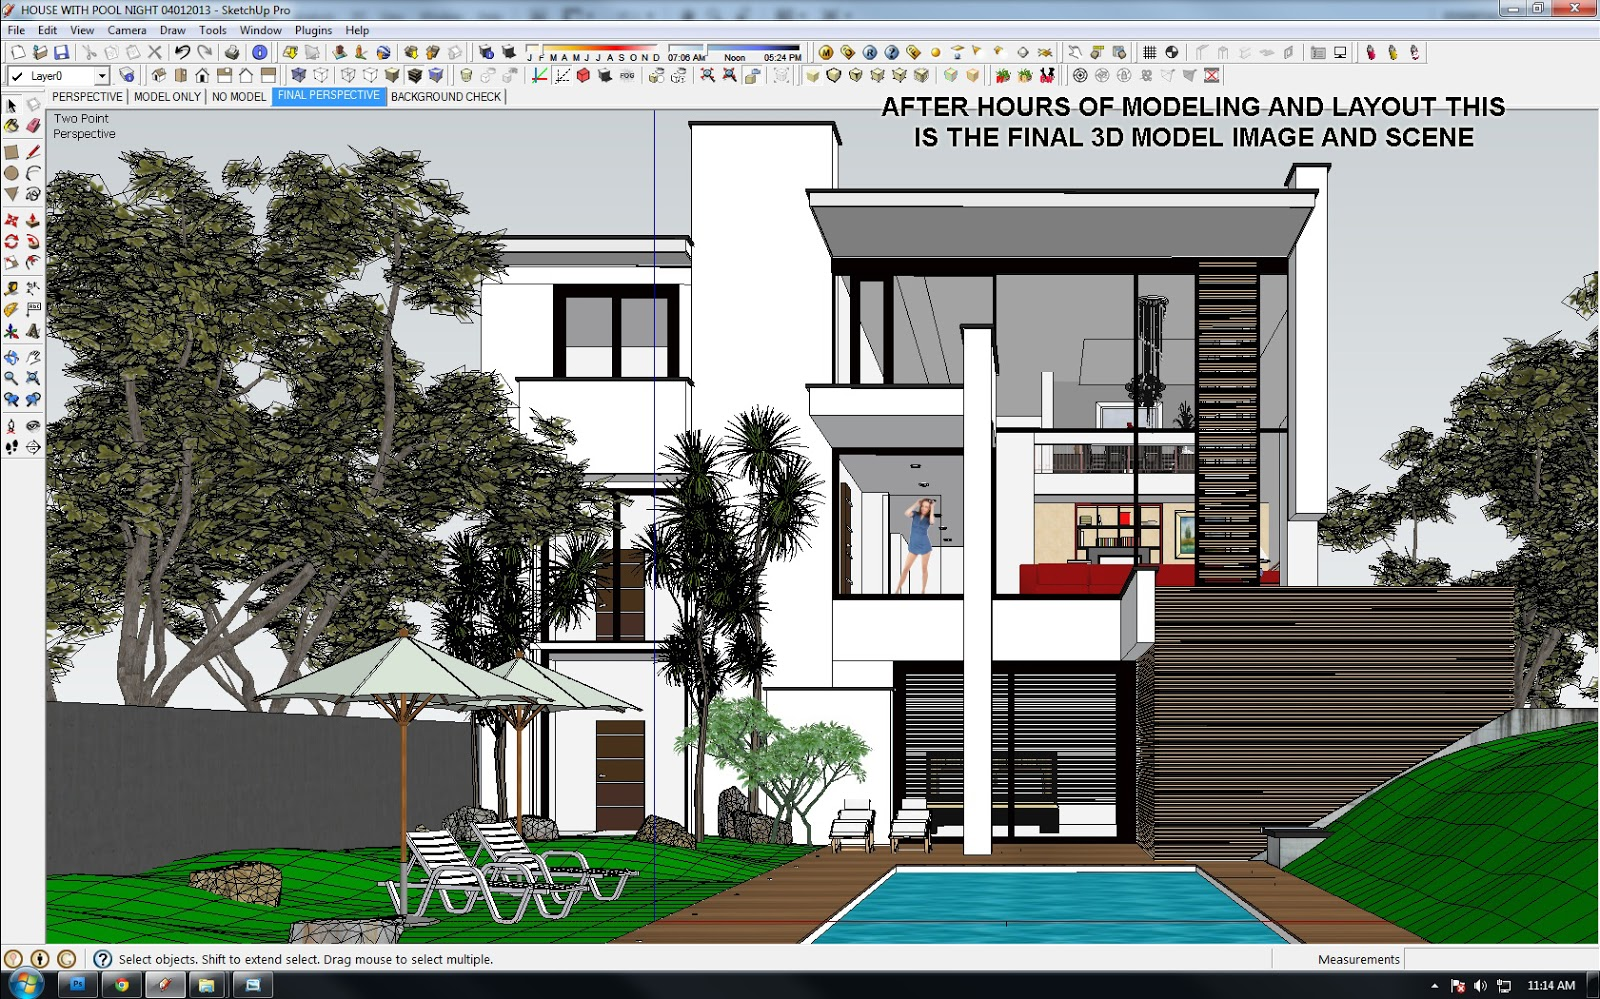 Sketchup texture vray tutorial exterior night scene 2 for Sketchup 2013